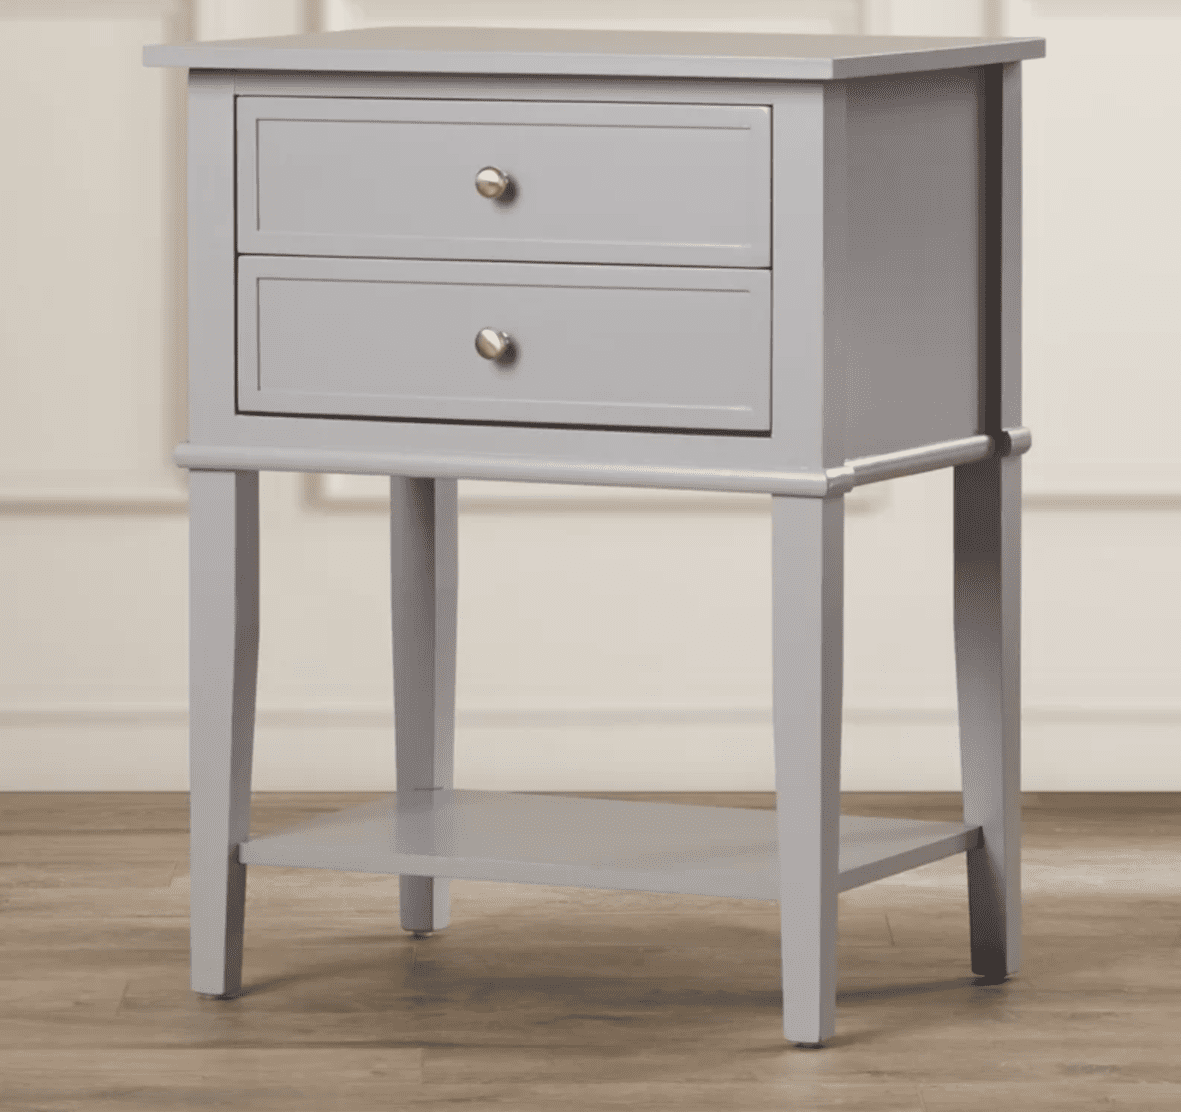 Beachcrest Home Winfield End Table with Storage